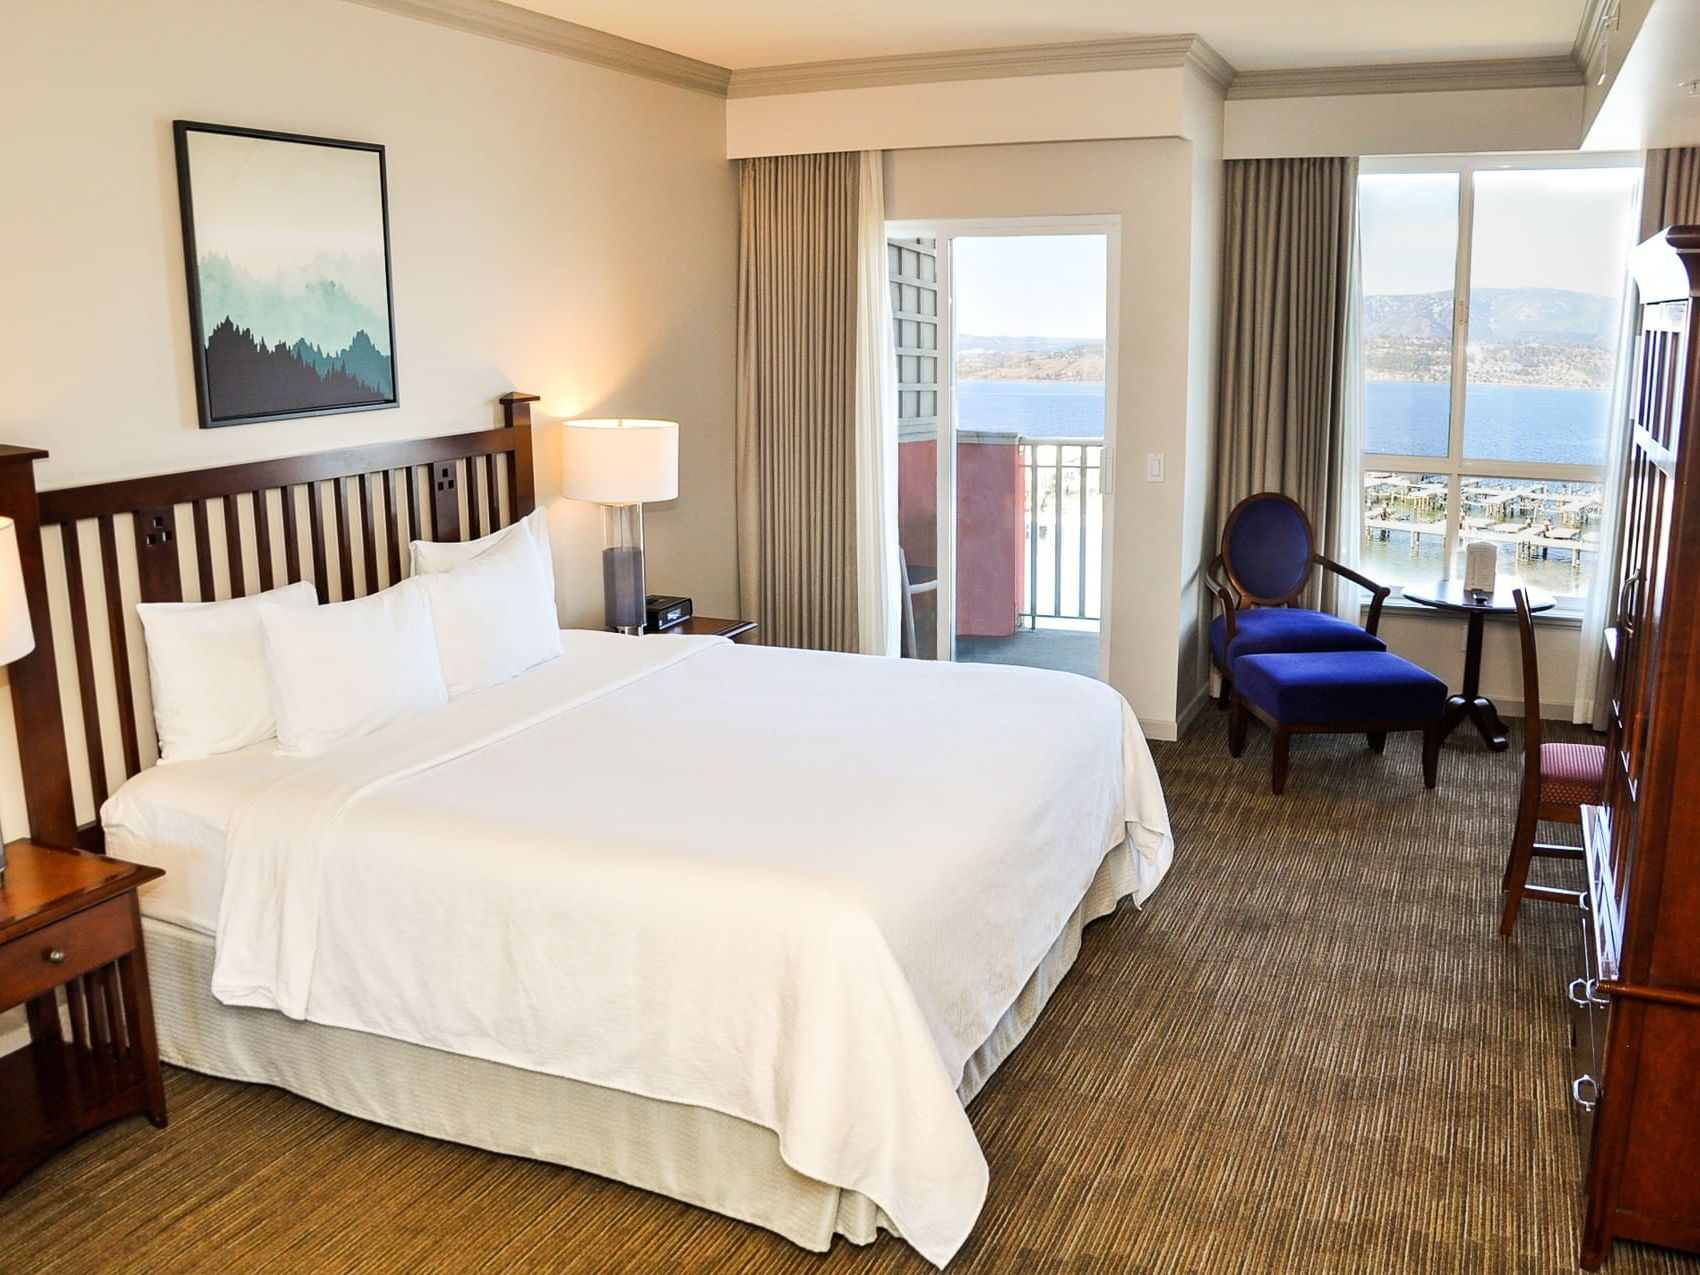 Deluxe Lakeside Guest Room with one bed at Manteo Resort